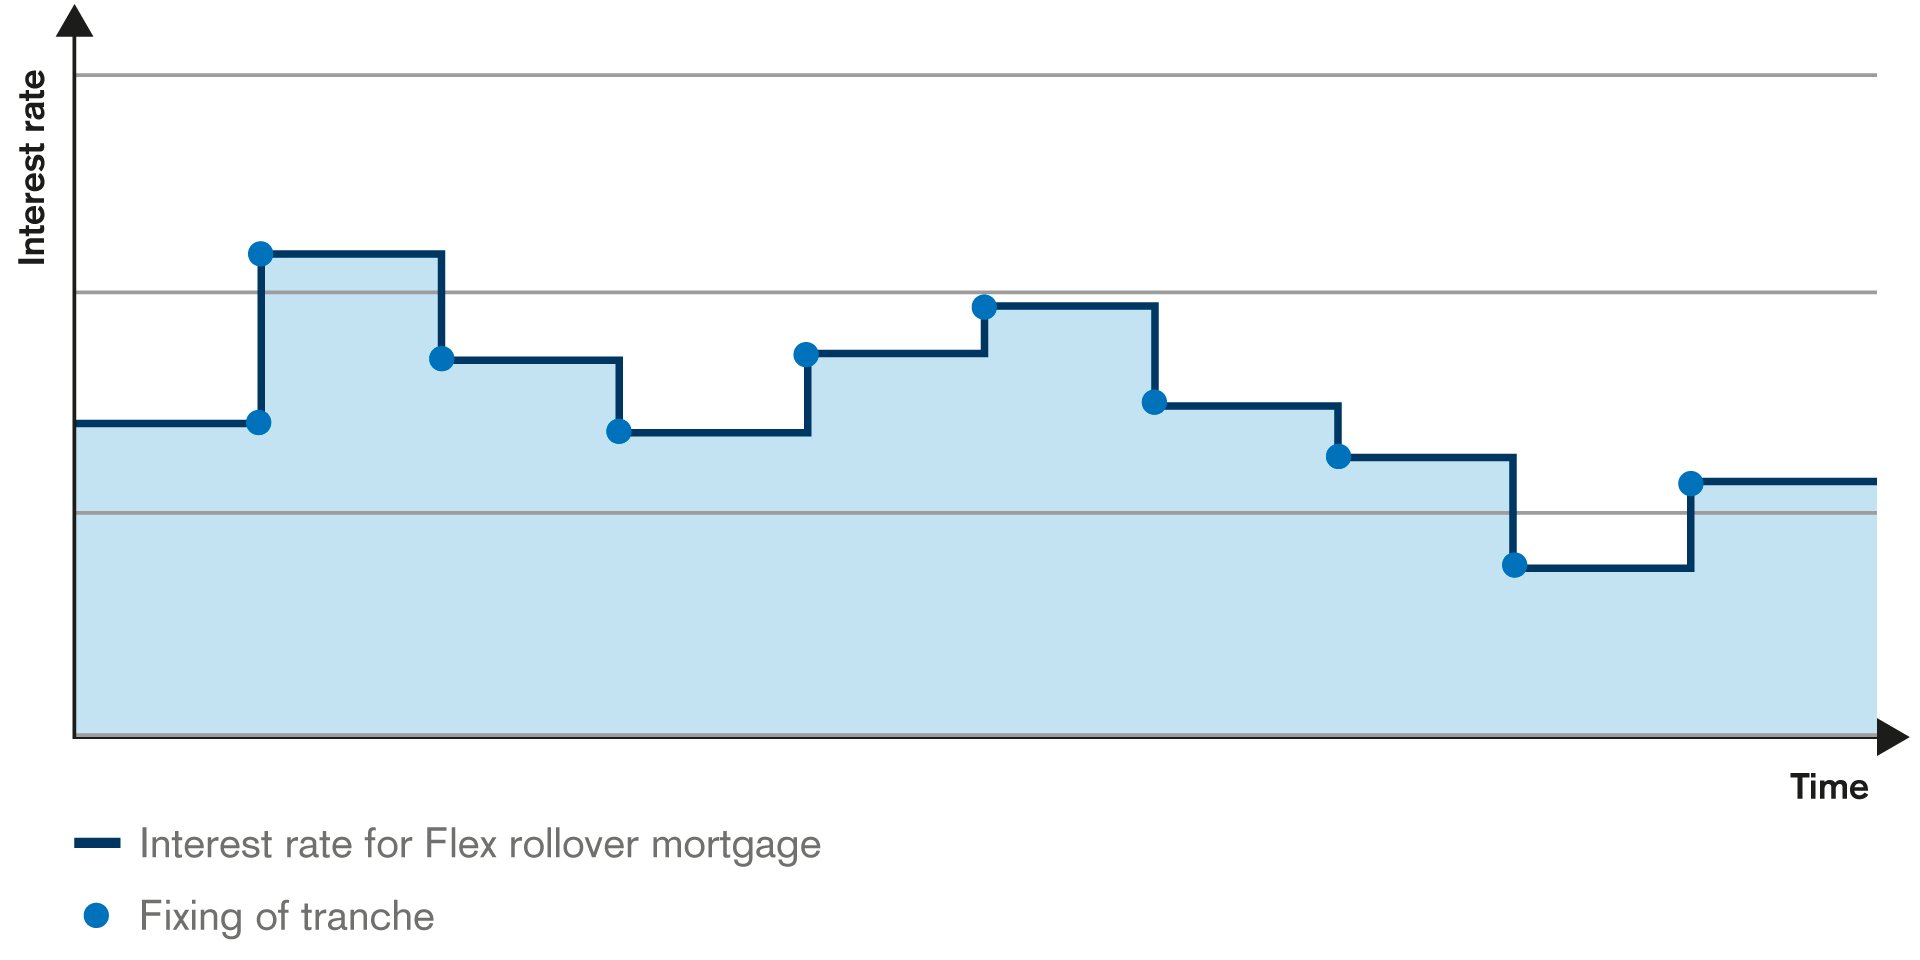 With CS's Flex rollover mortgage, your interest rate is pegged to the LIBOR.